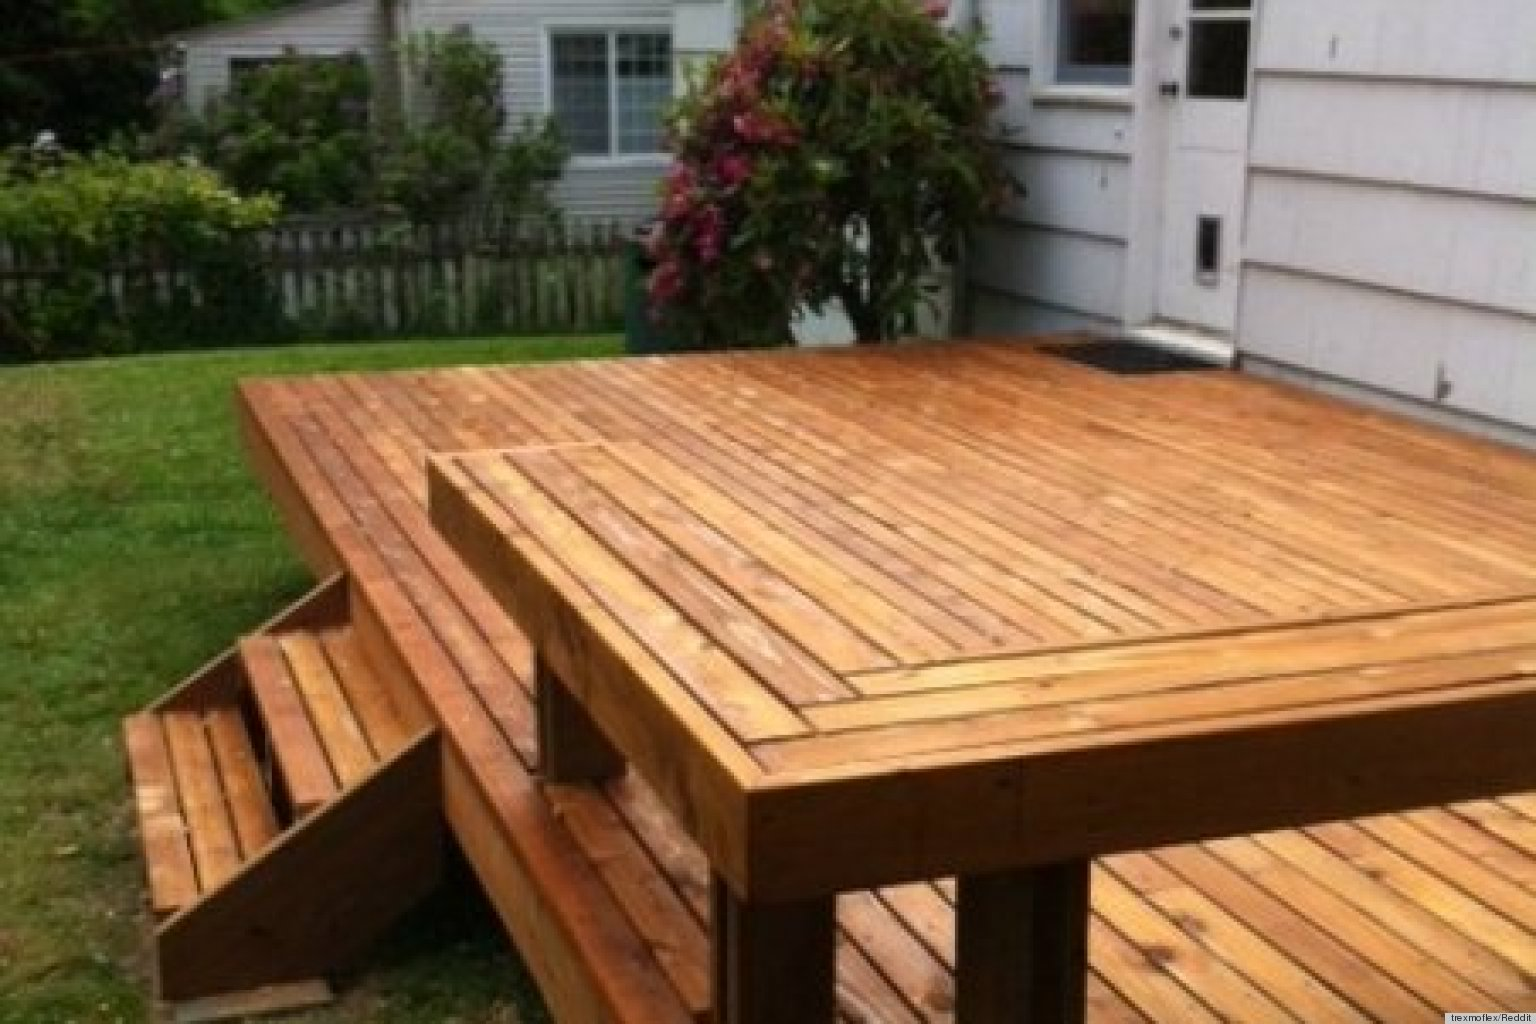 Decks light construction projects winston salem for Small deck seating ideas